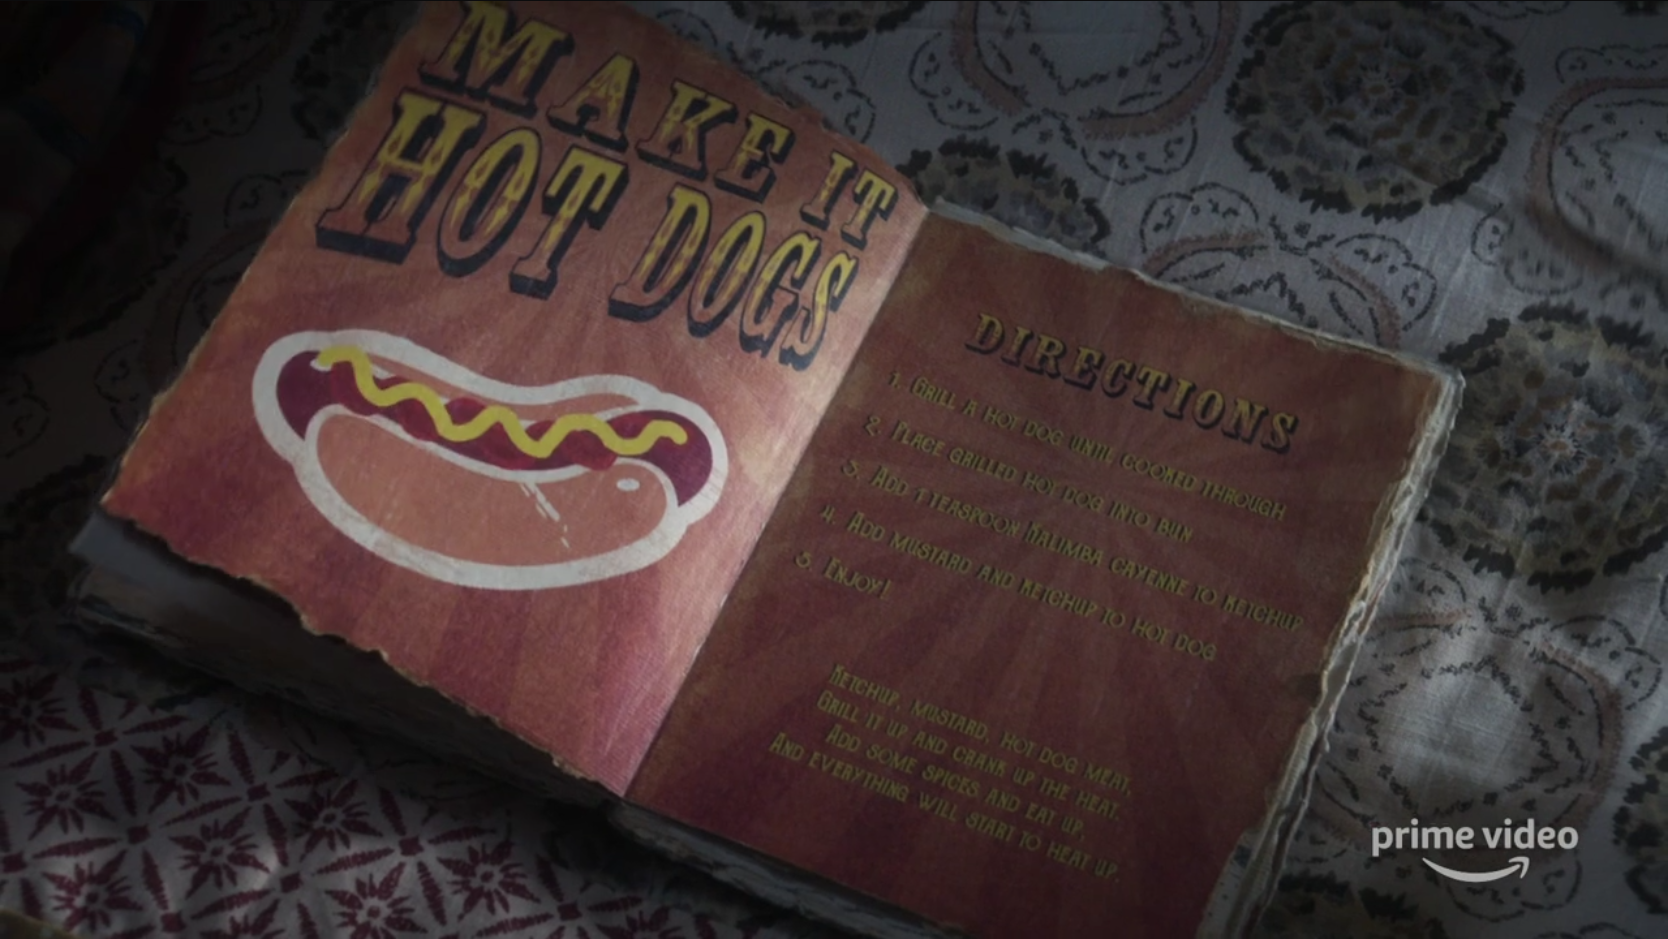 Make-It Hot Dogs